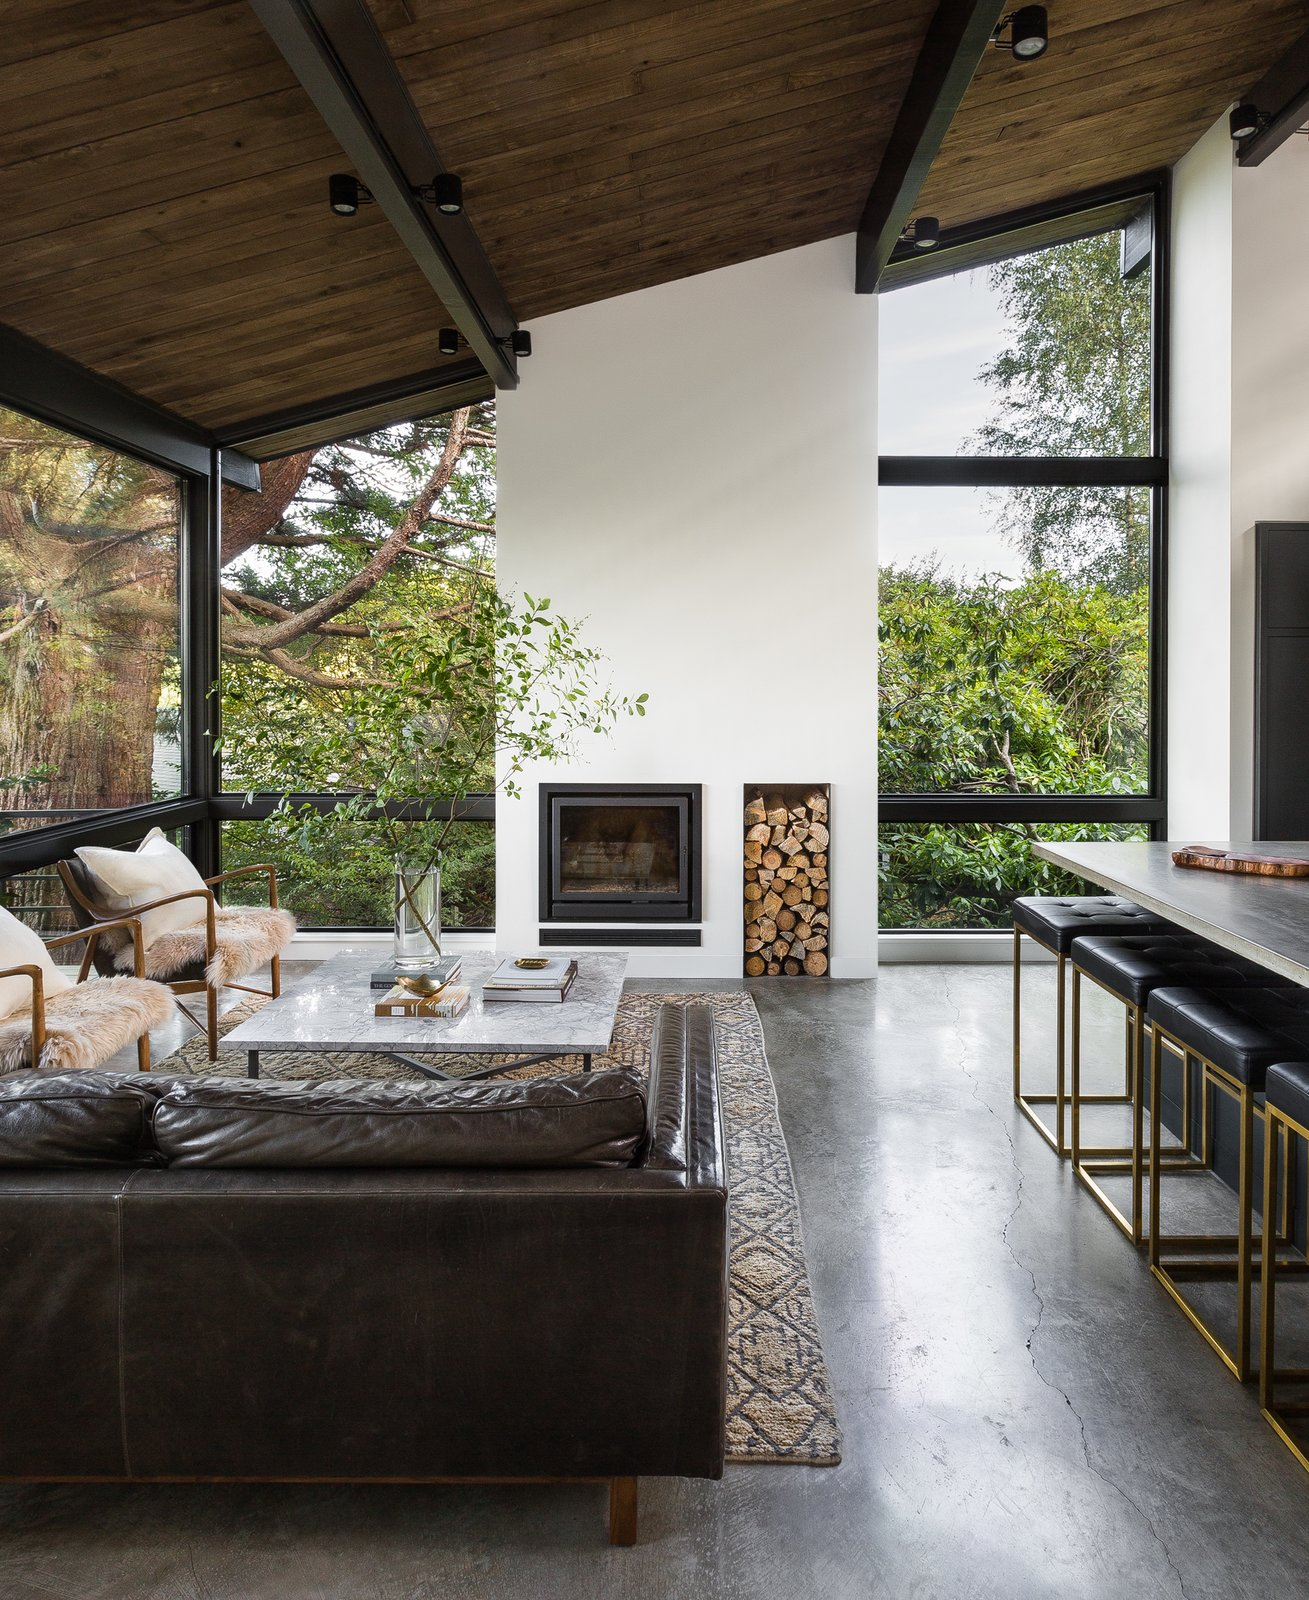 a-new-double-height-fireplace-column-is-the-focal-point-of-the-new-living-room-and-underscores-the-rooms-graceful-proportions